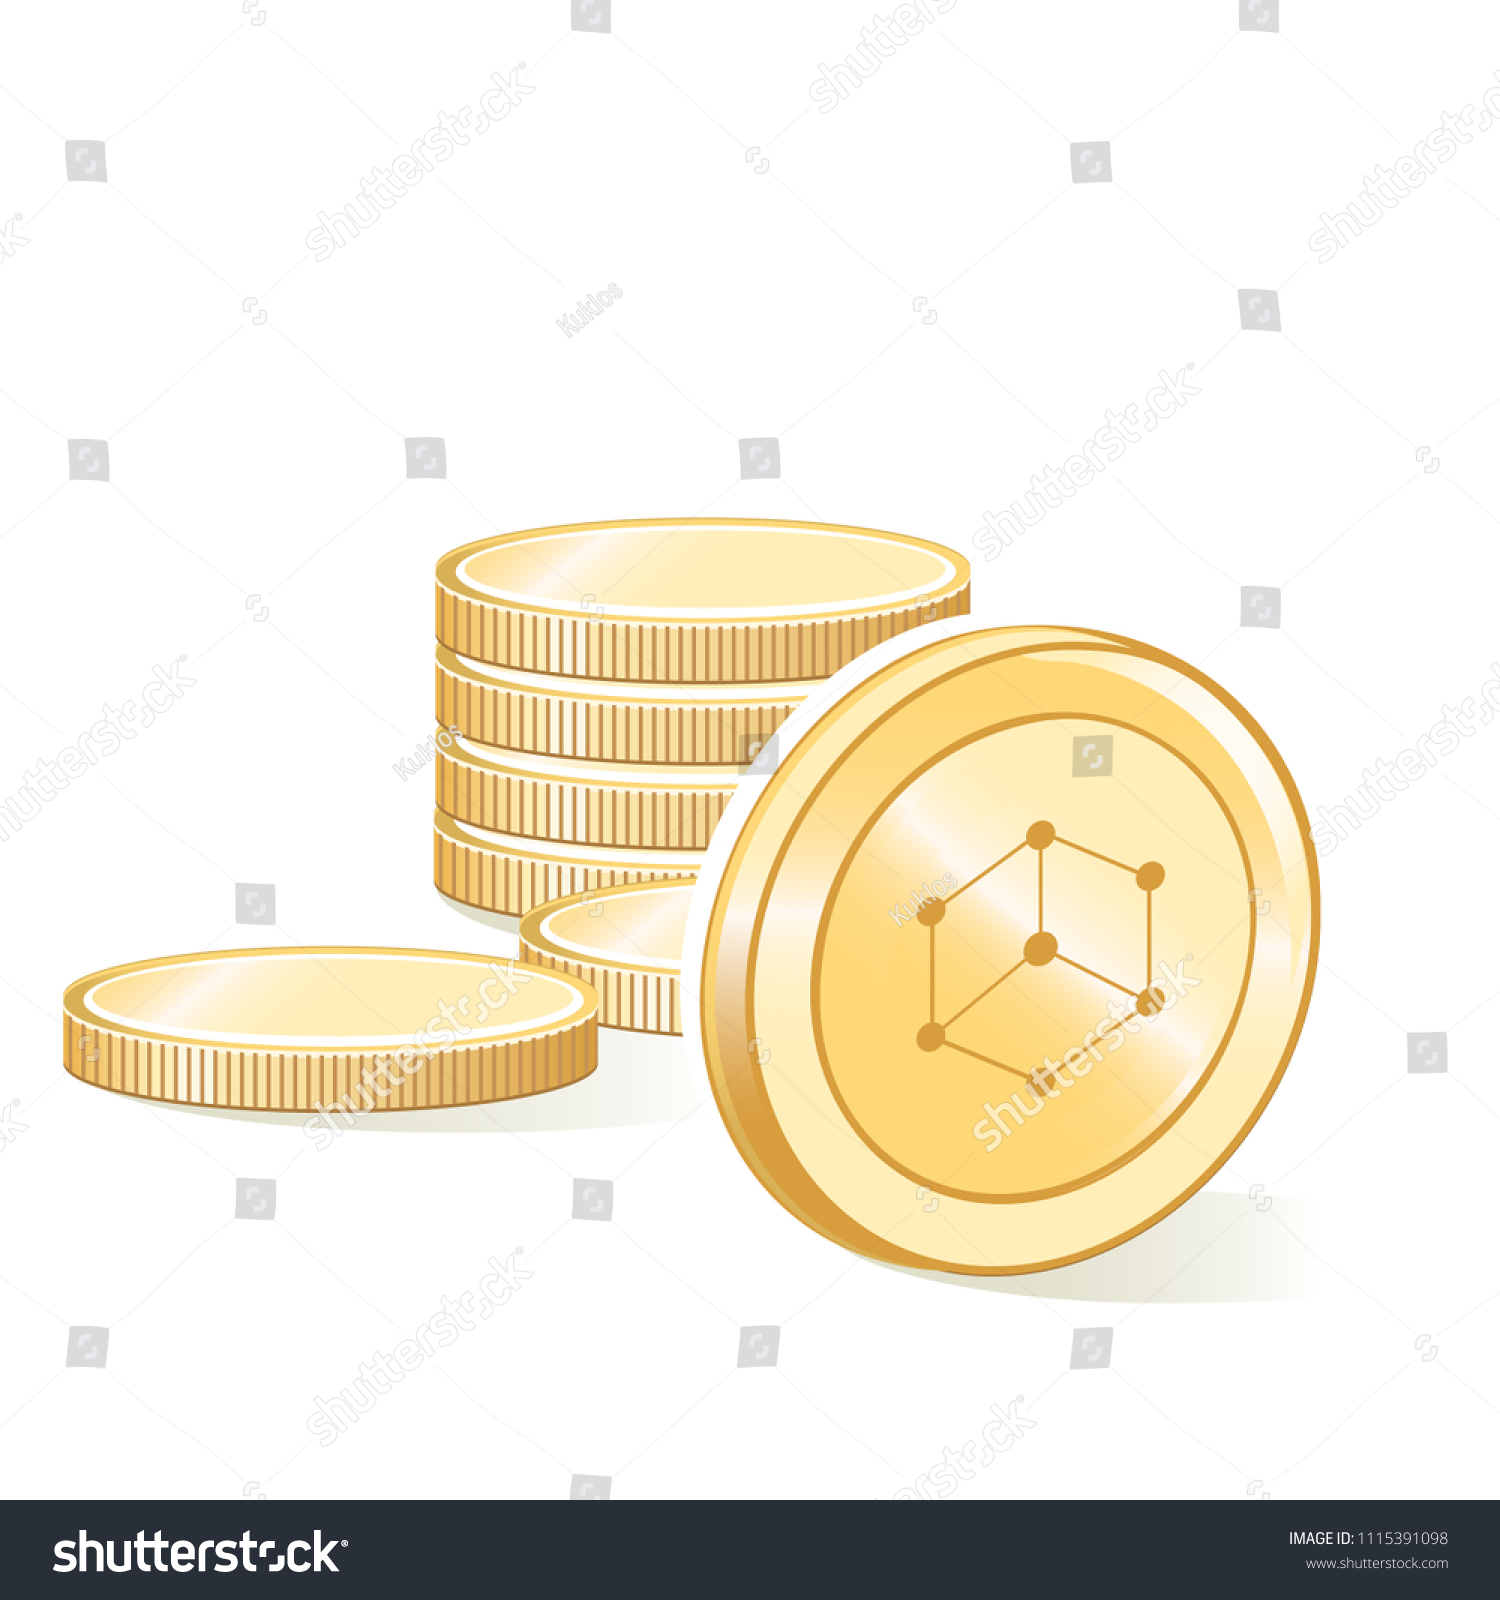 Bibox Cryptocurrency Coin Gold Stacks Isolated Stock Vector (Royalty